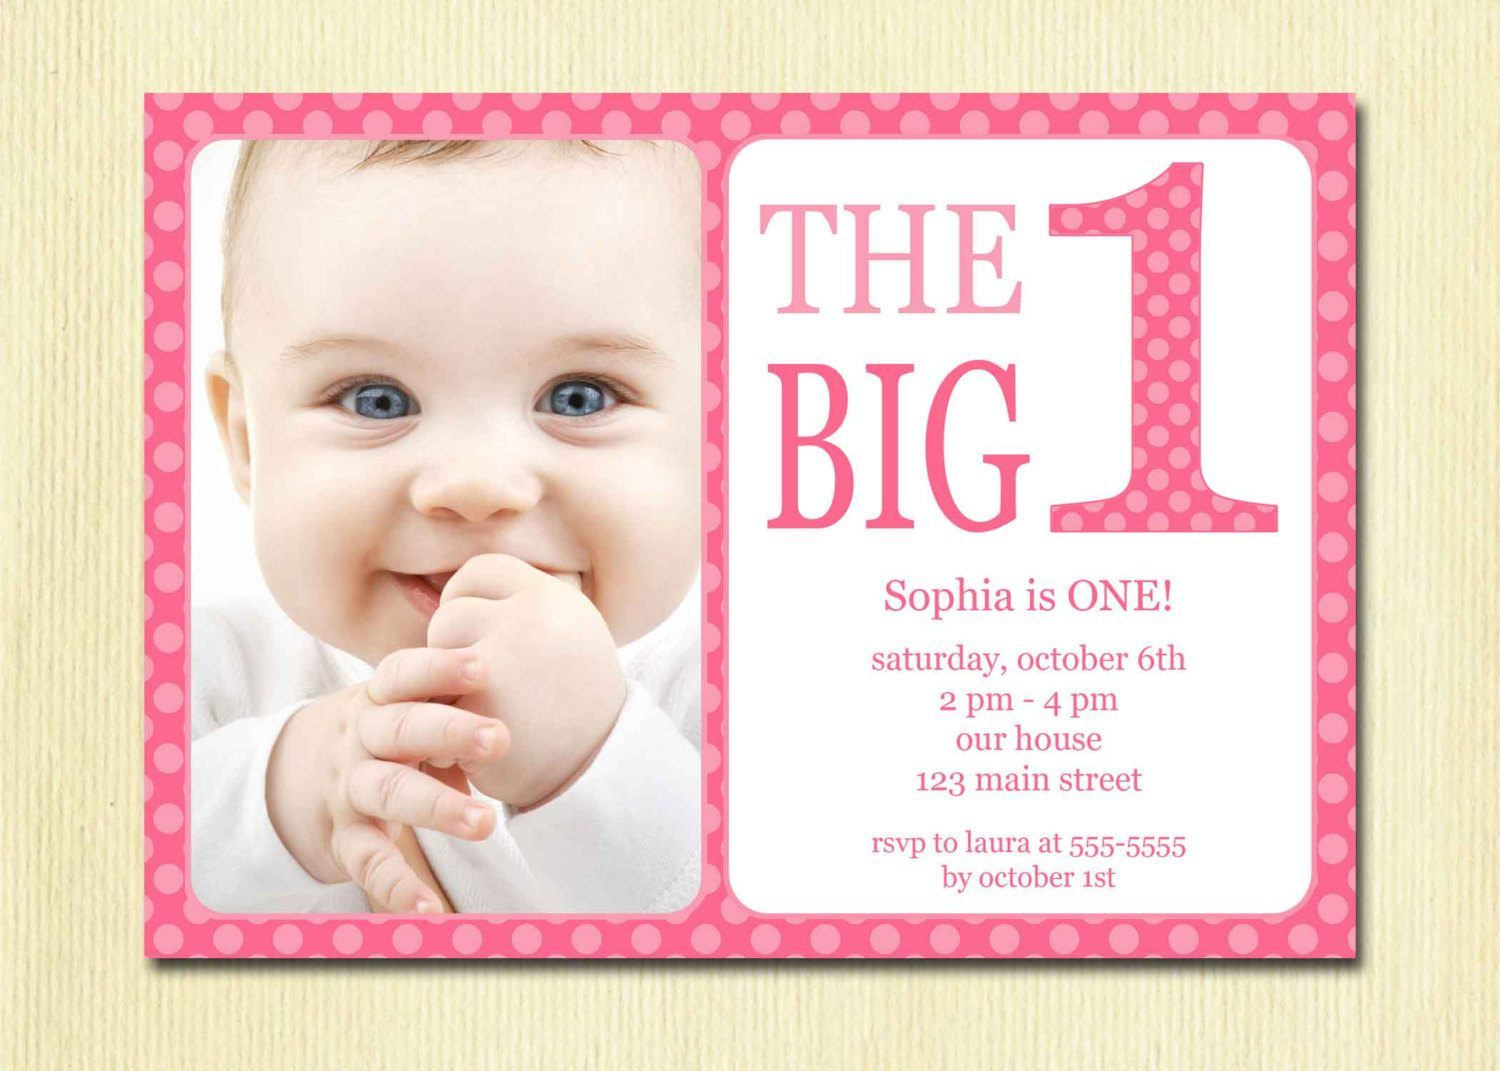 baby birthday invitation template ; 6dff1ef104eaa518aba7532bd490b829